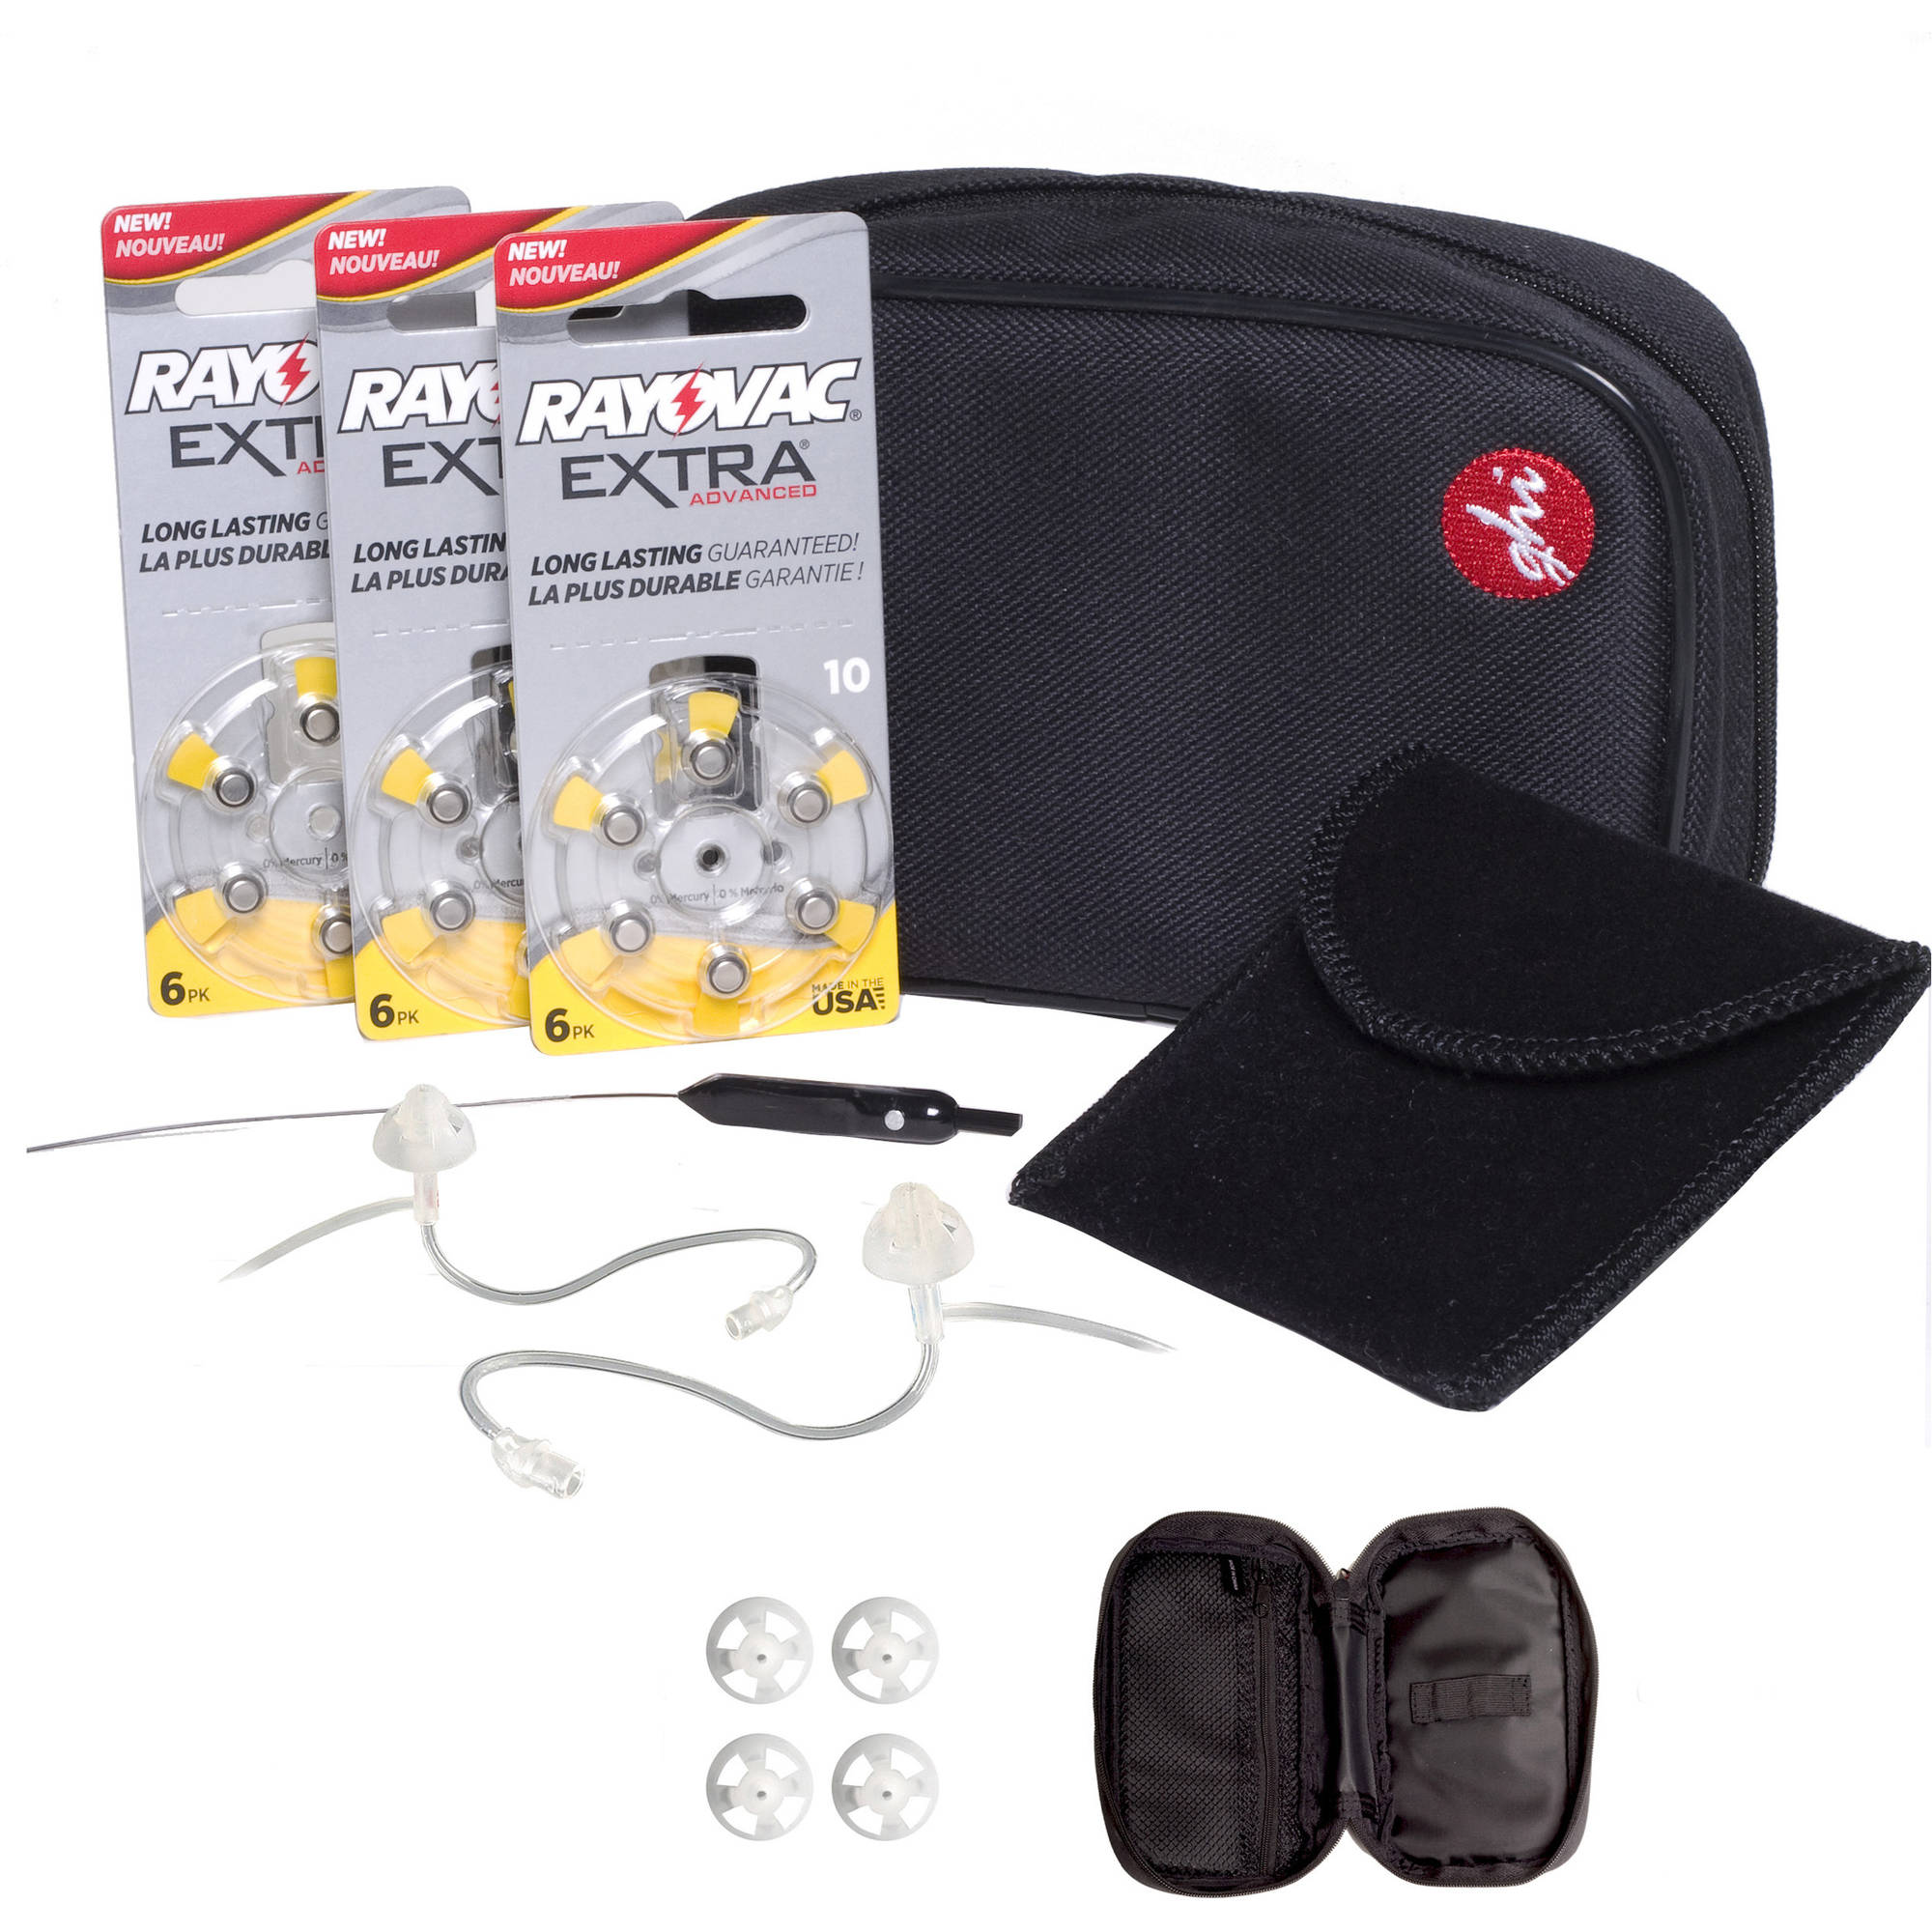 Women's Simplicity OTE Travel Accessory Kit